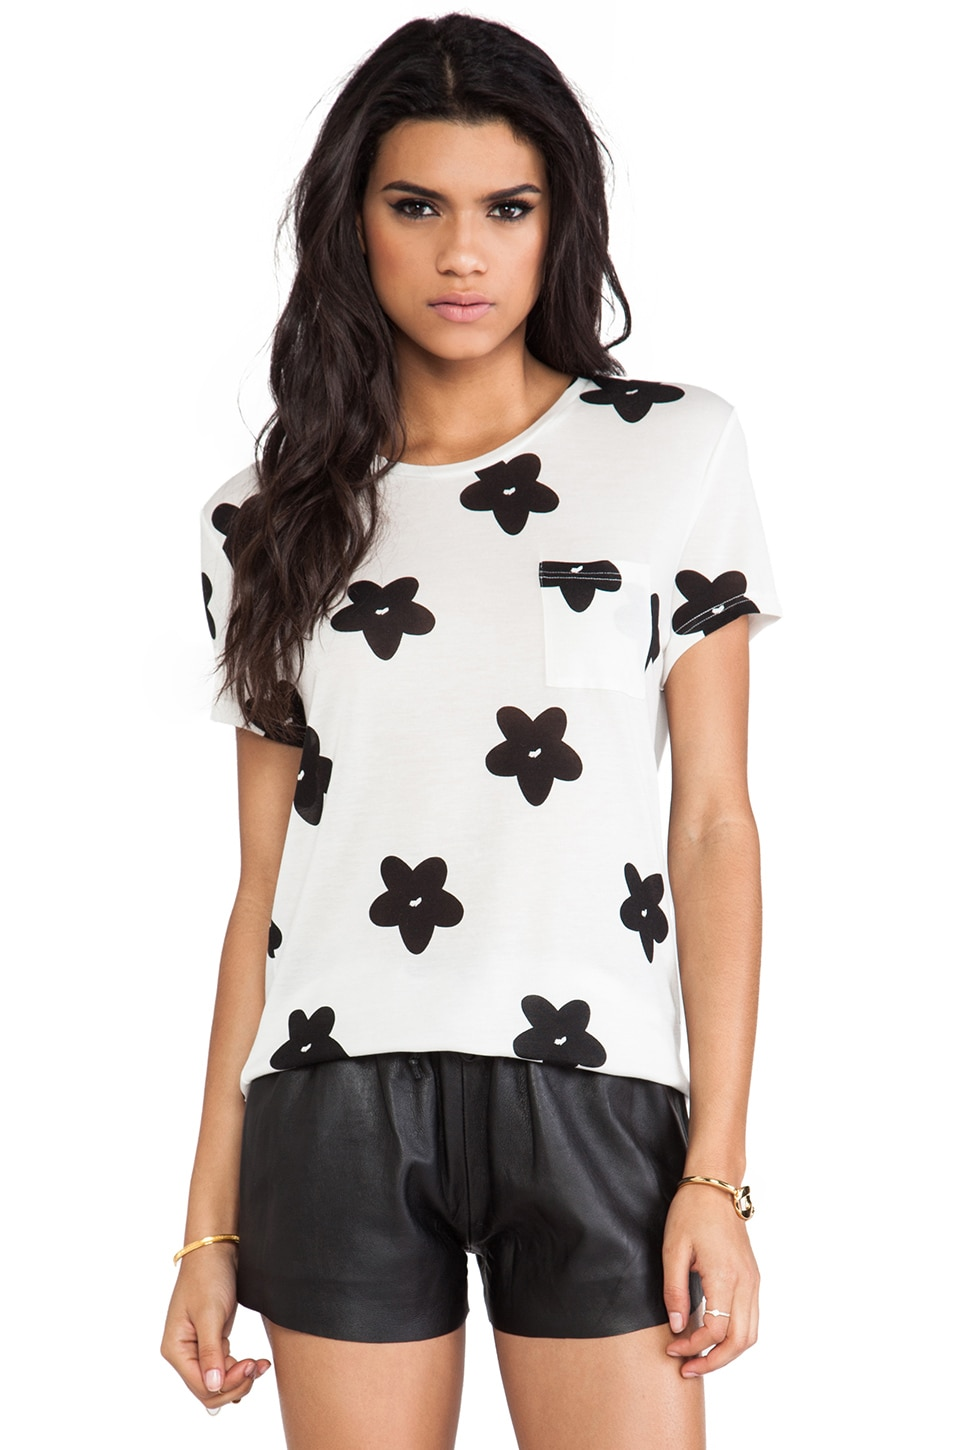 TOWNSEN Daisy T-Shirt in White